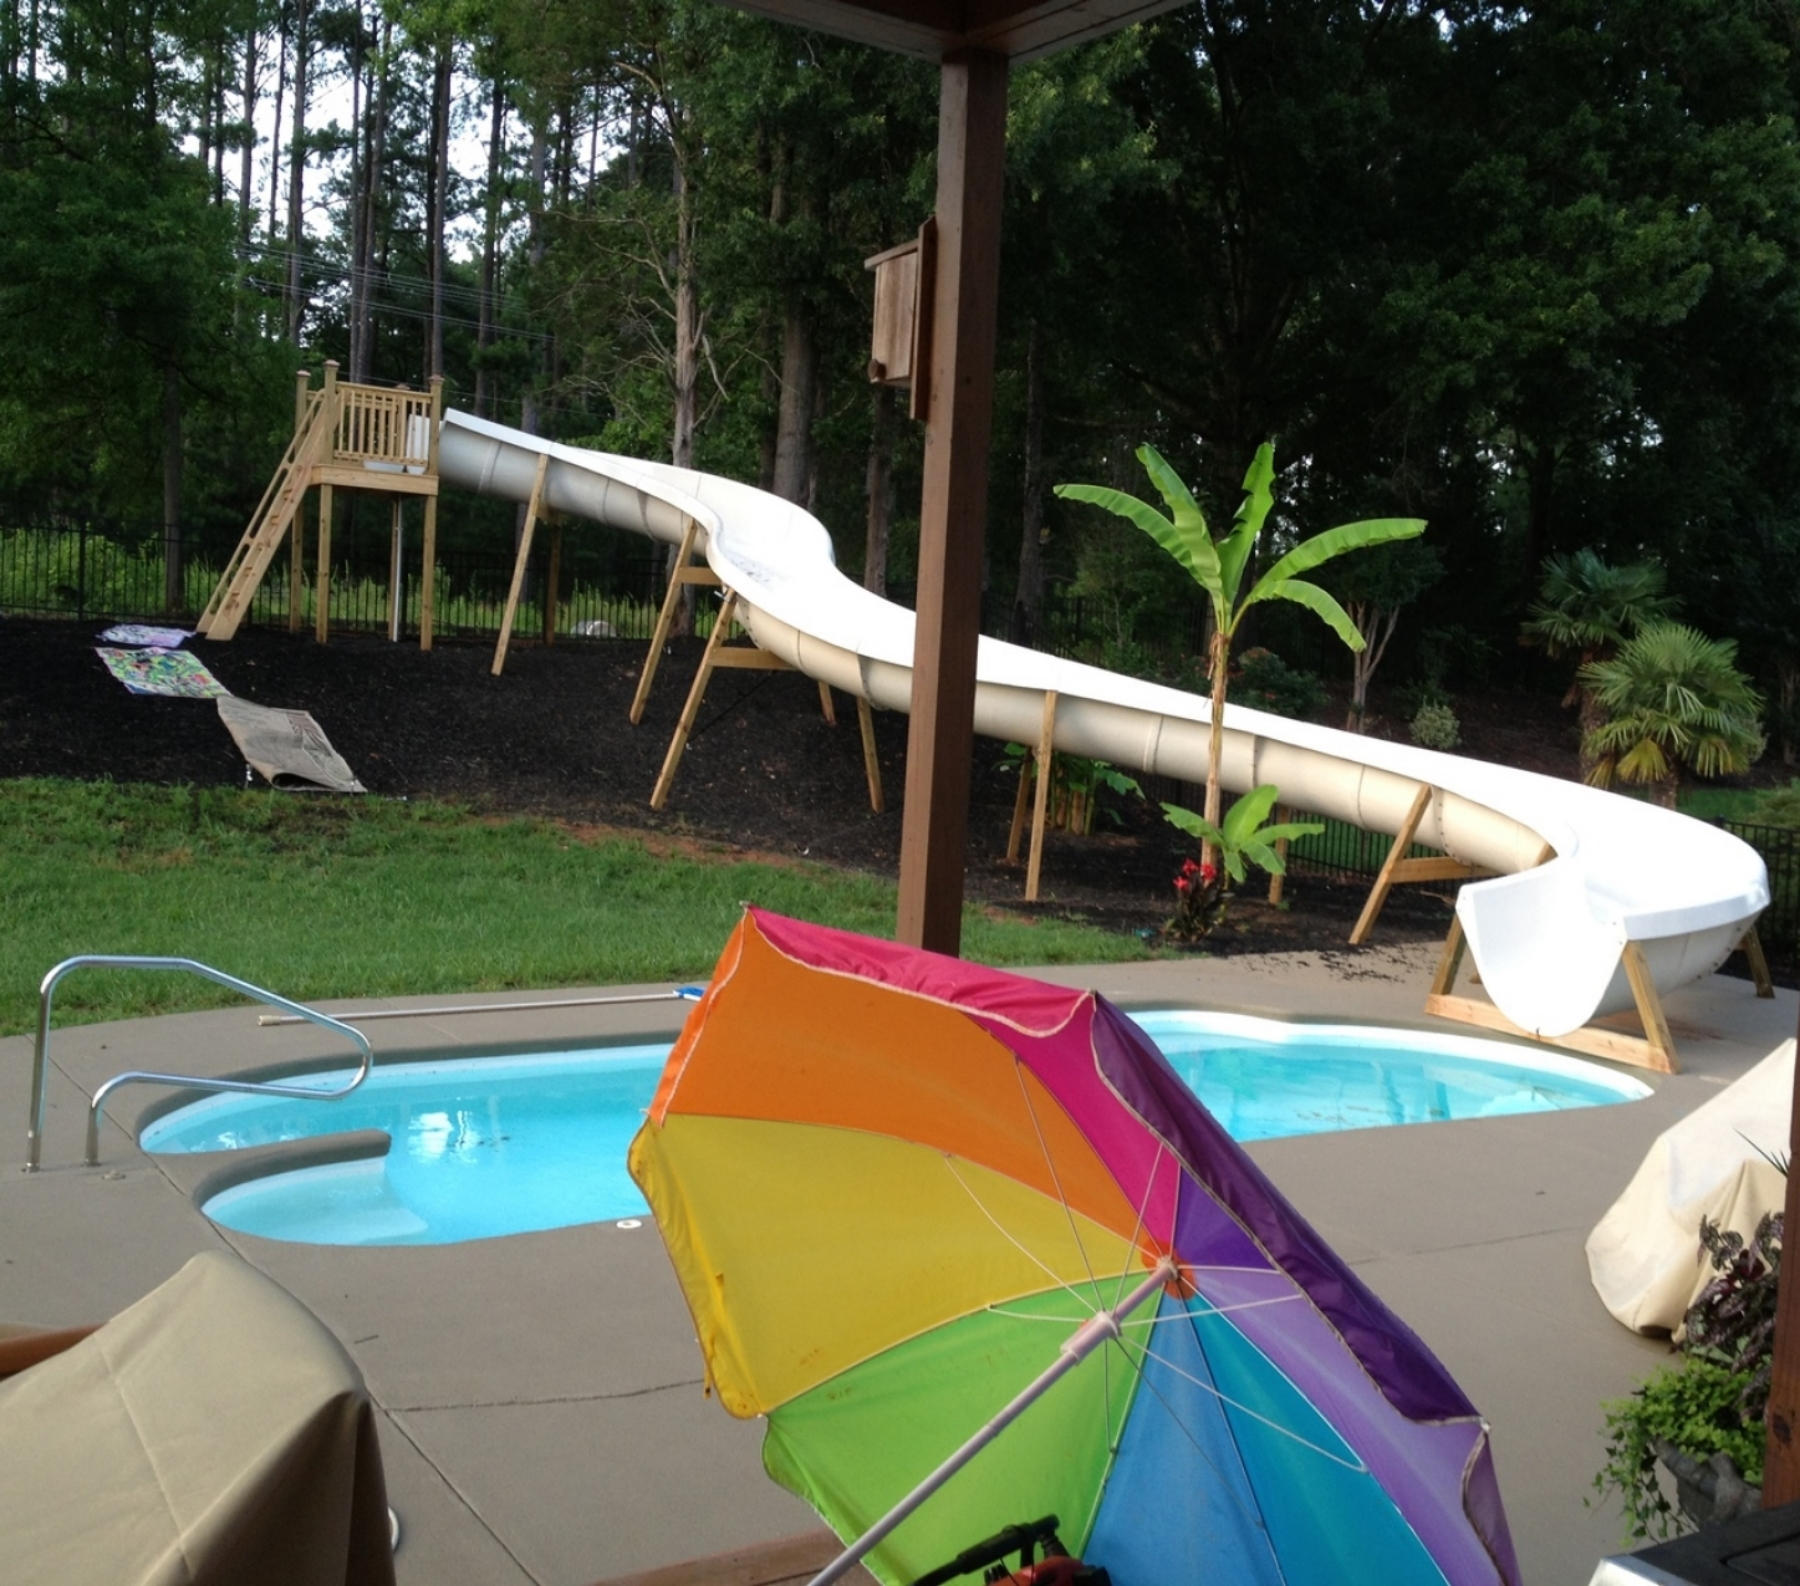 Recycled Commerical Water Slides for Sale | Fix My Slide